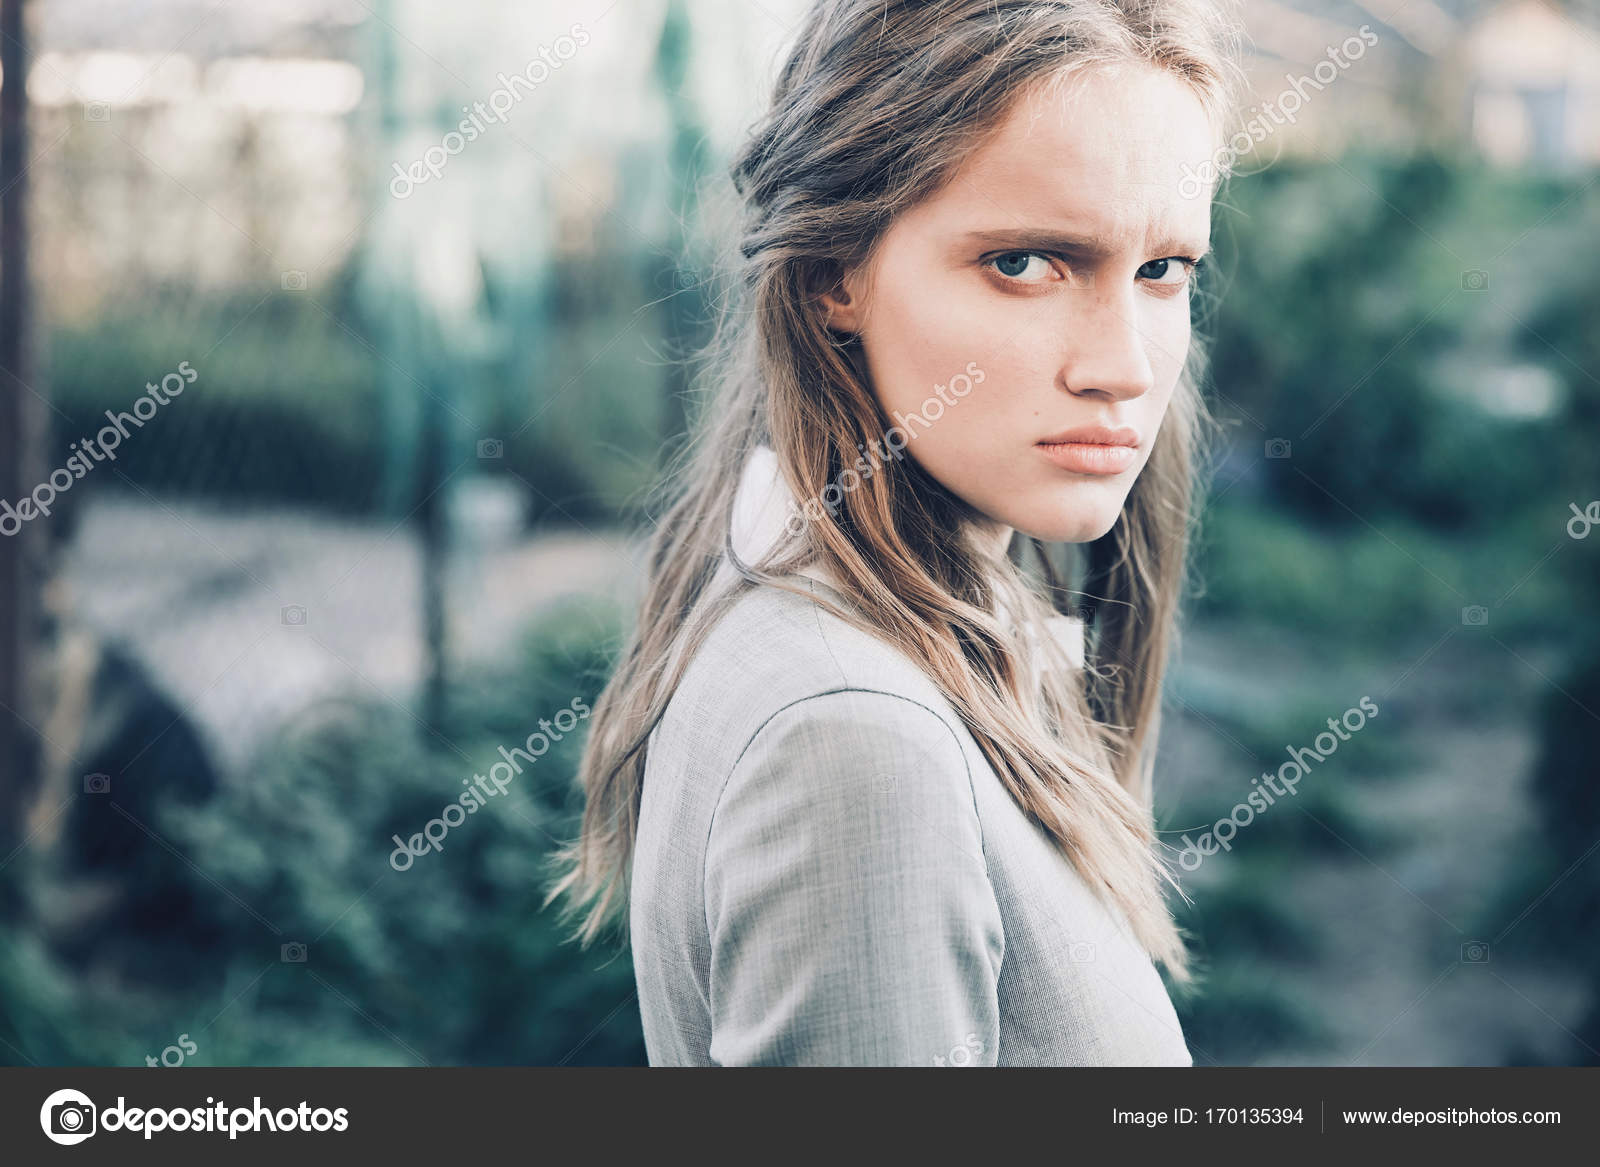 6c17c26115235 Portrait of young beautiful serious girl with long brown hair wearing light  gray dress in retro